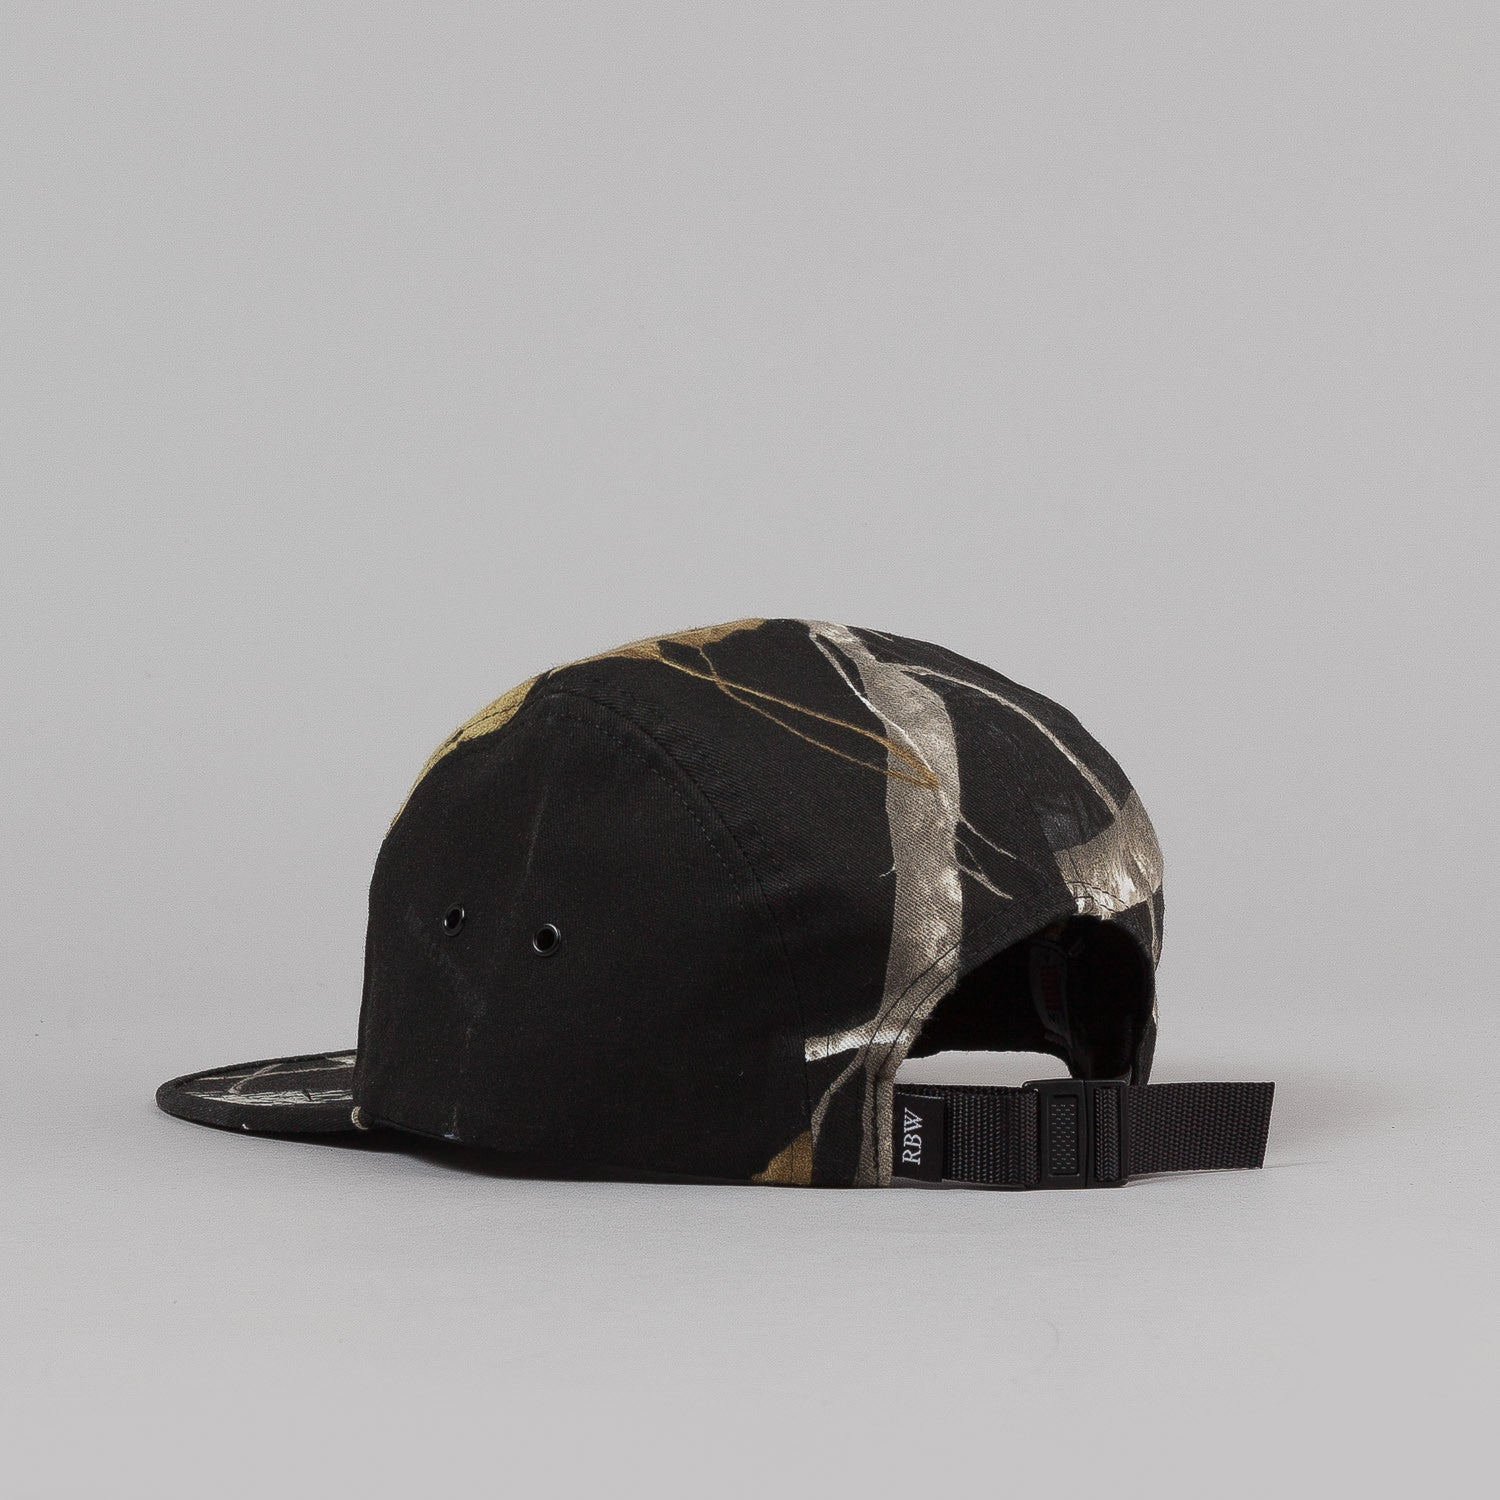 Raised By Wolves Algonquin Camp Cap - Camouflage Twill Realtree Black